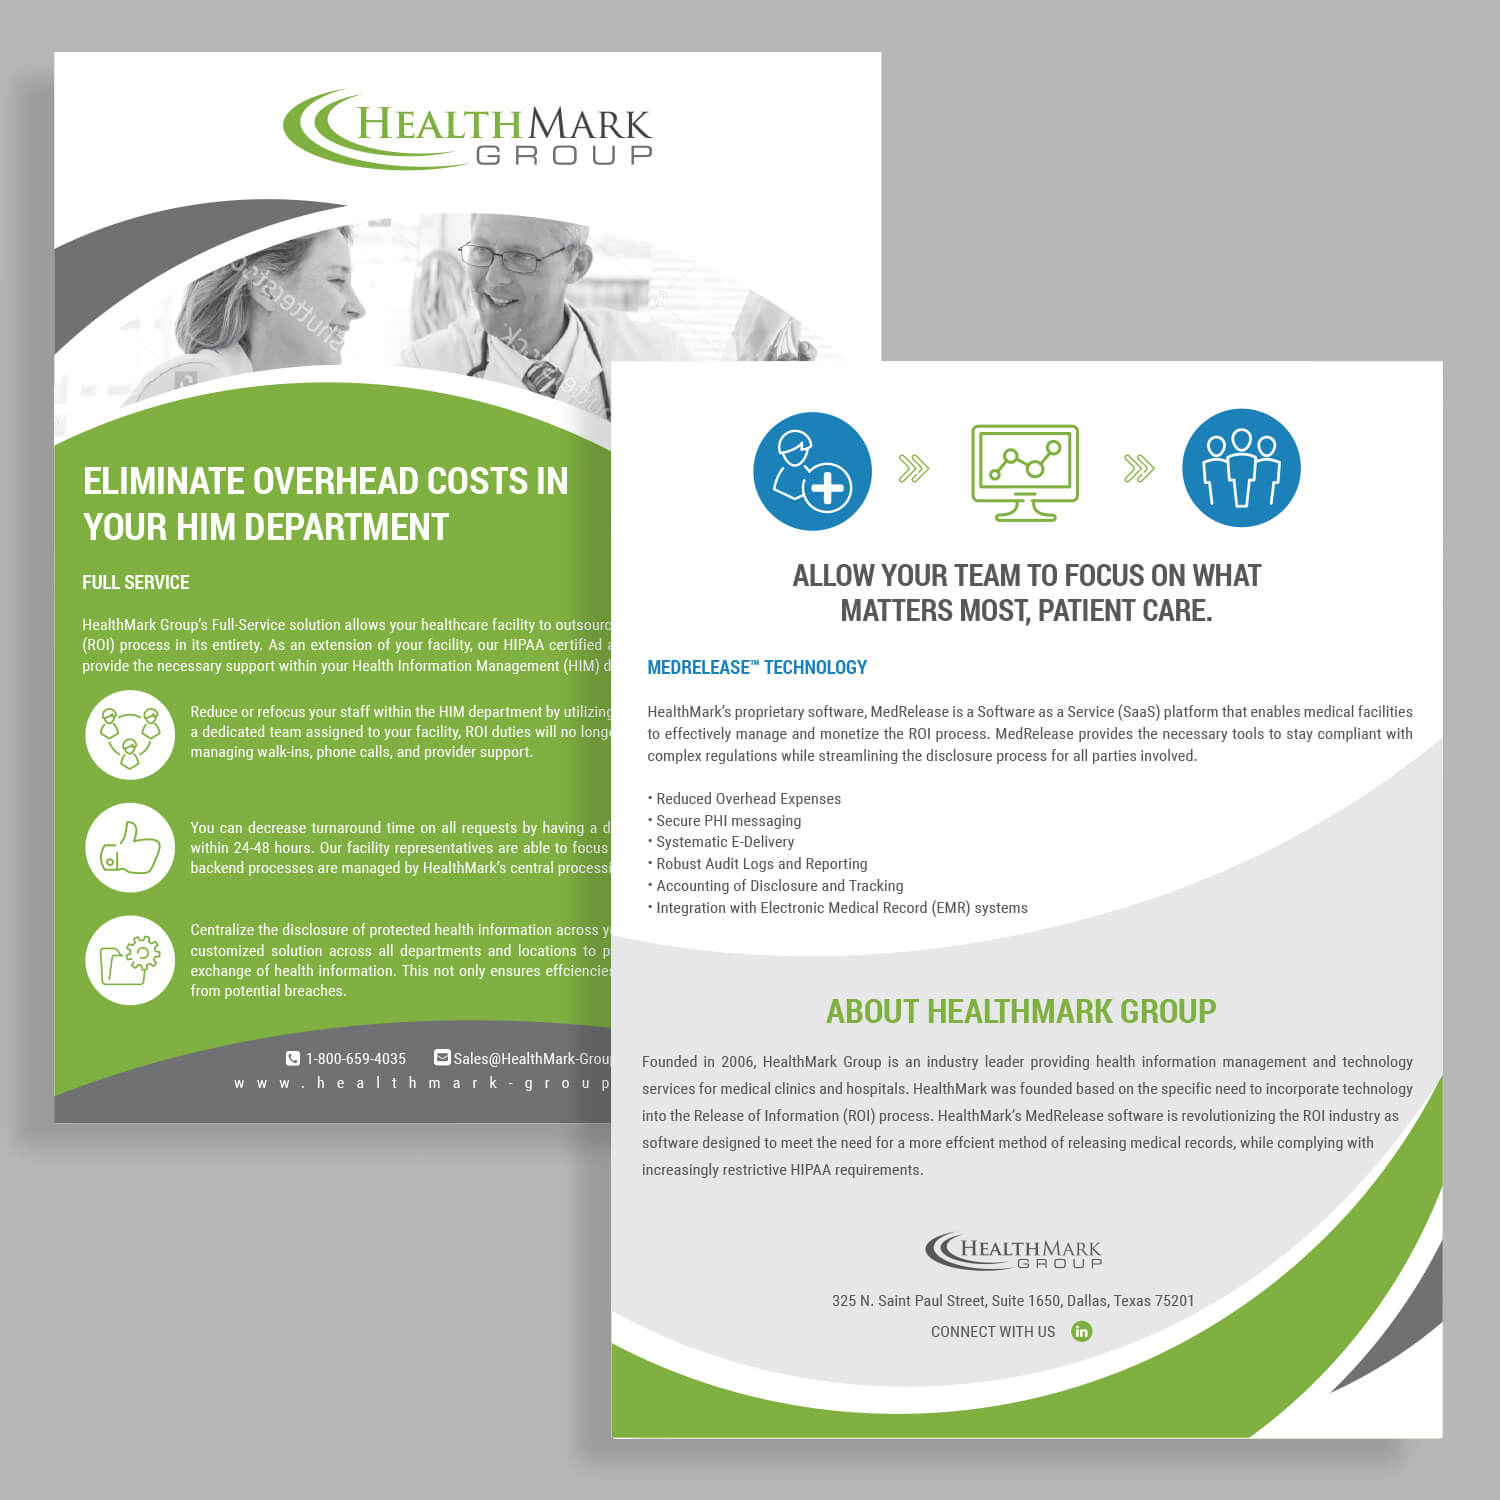 005 One Page Brochure Template Ideas 523608 14107804 2612816 with regard to One Page Brochure Template